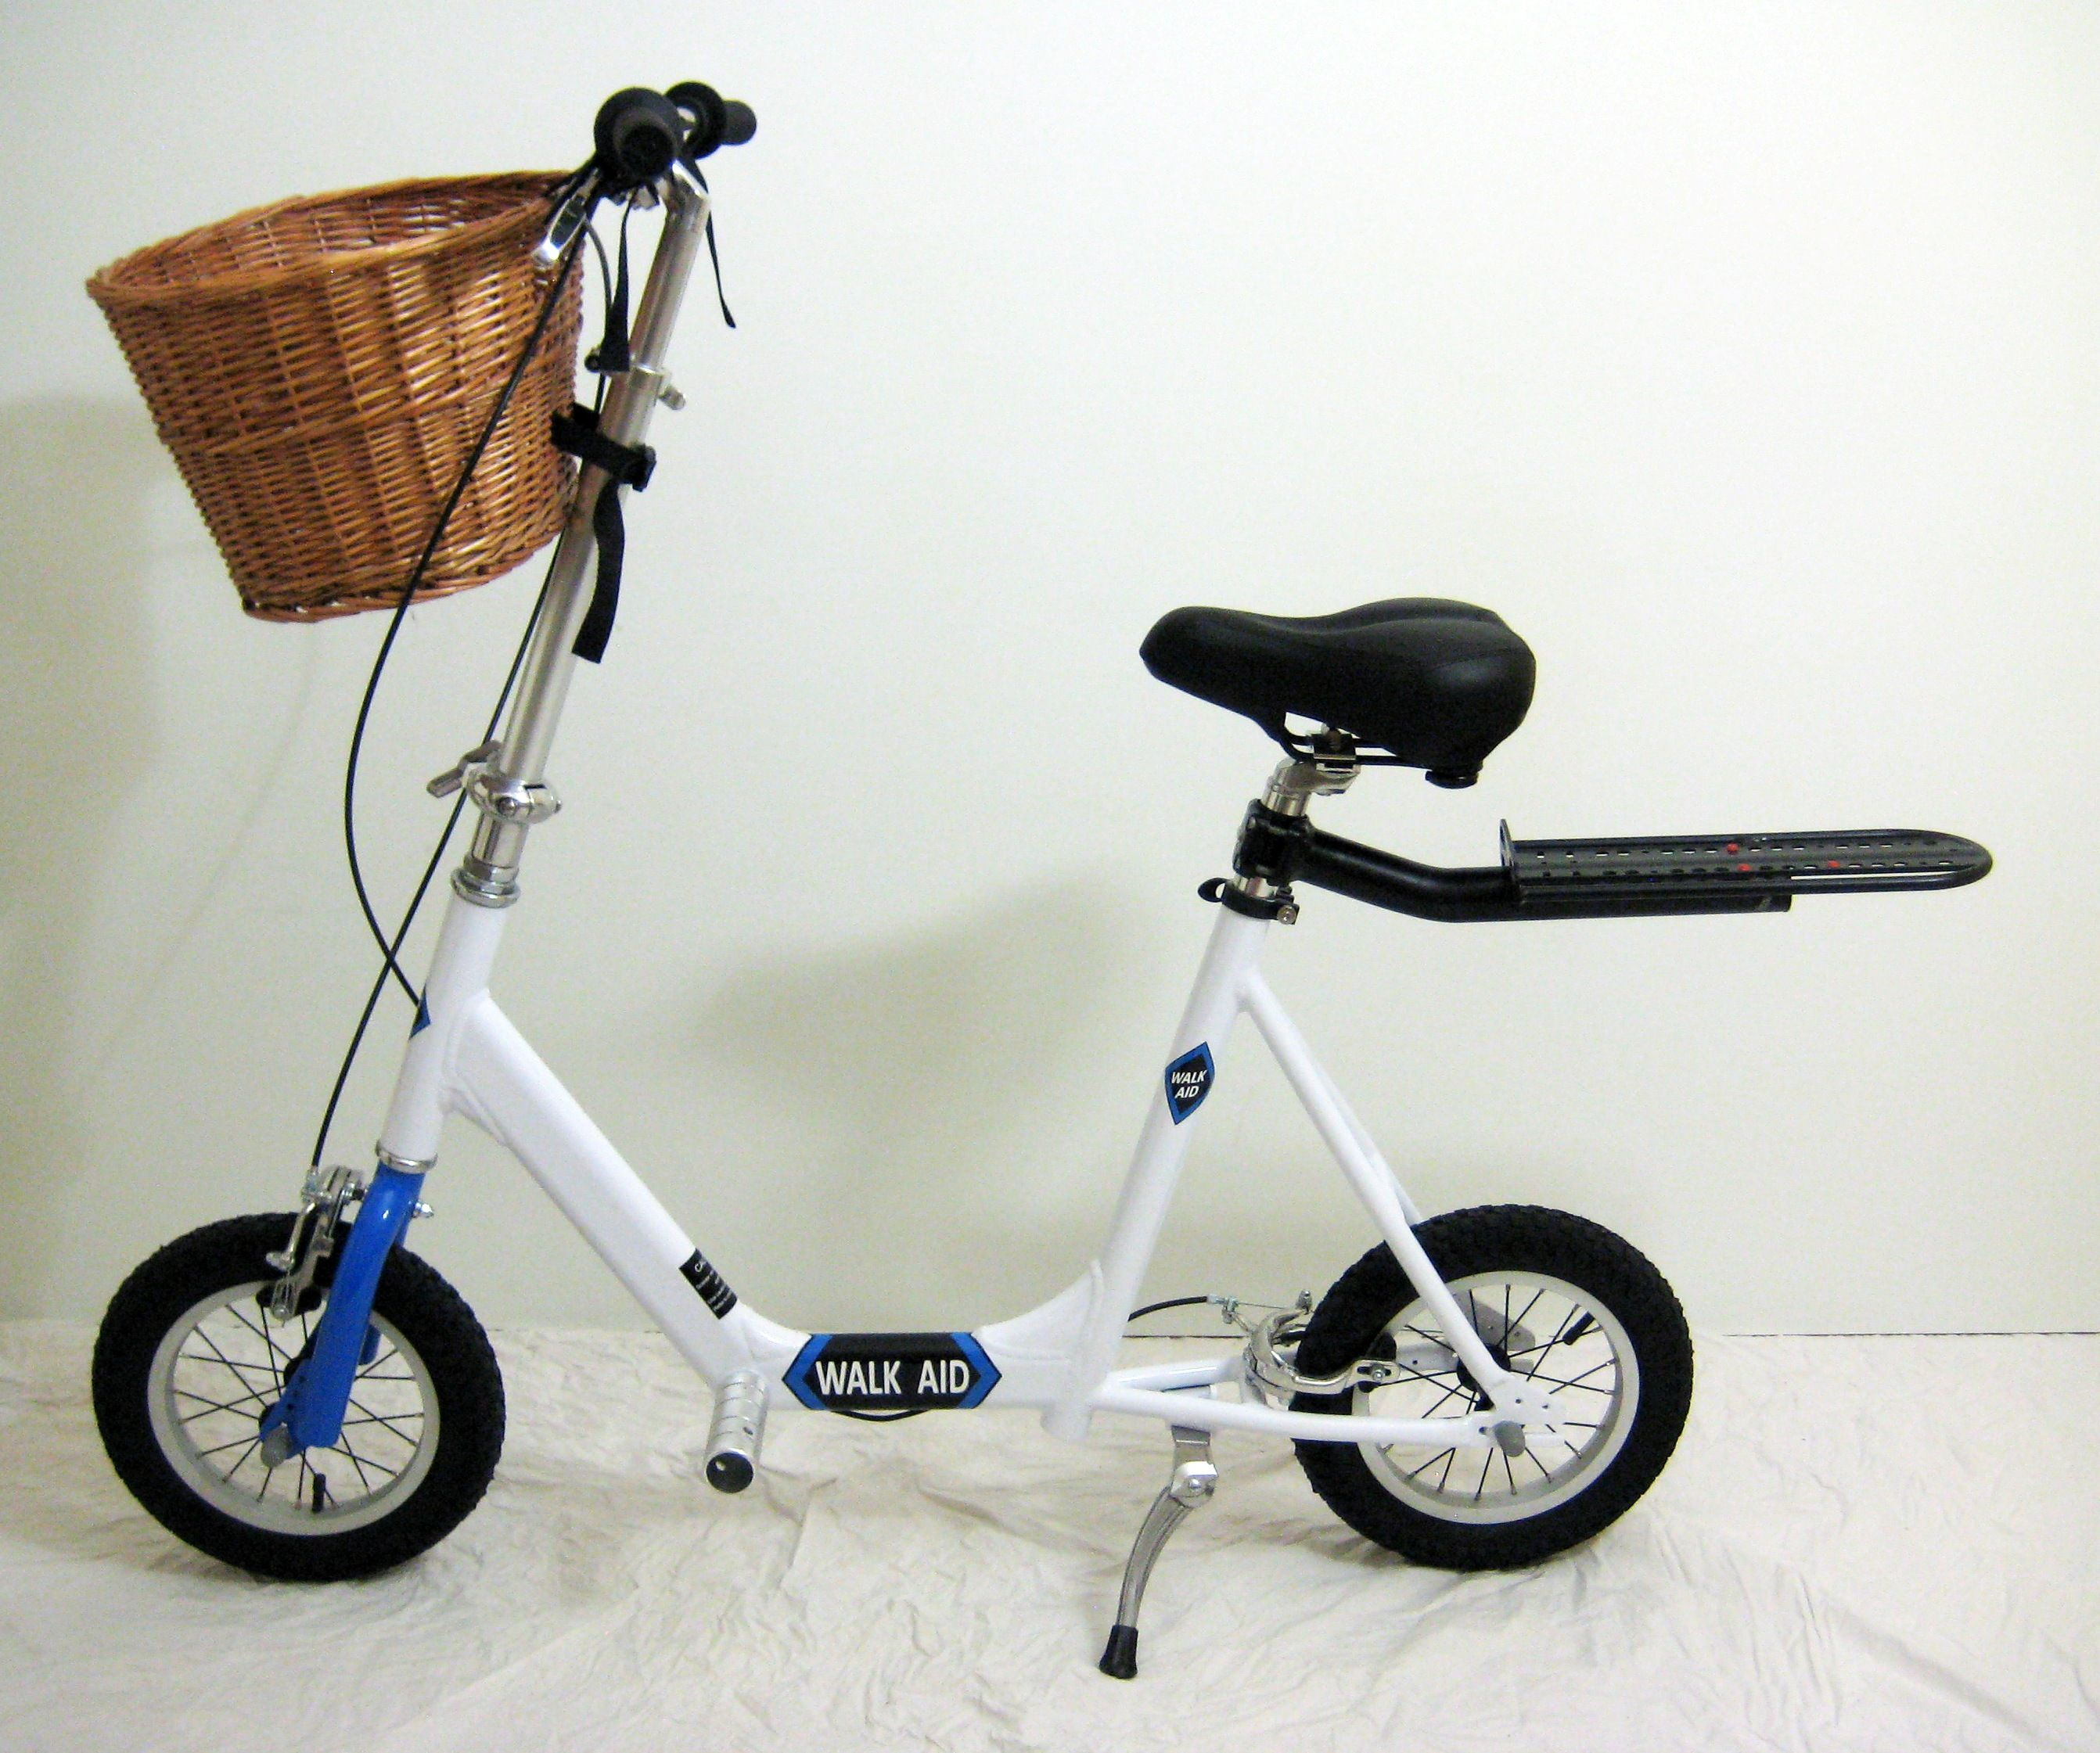 Walking aid by walk aid scooter walking aid a new twist on personal mobility